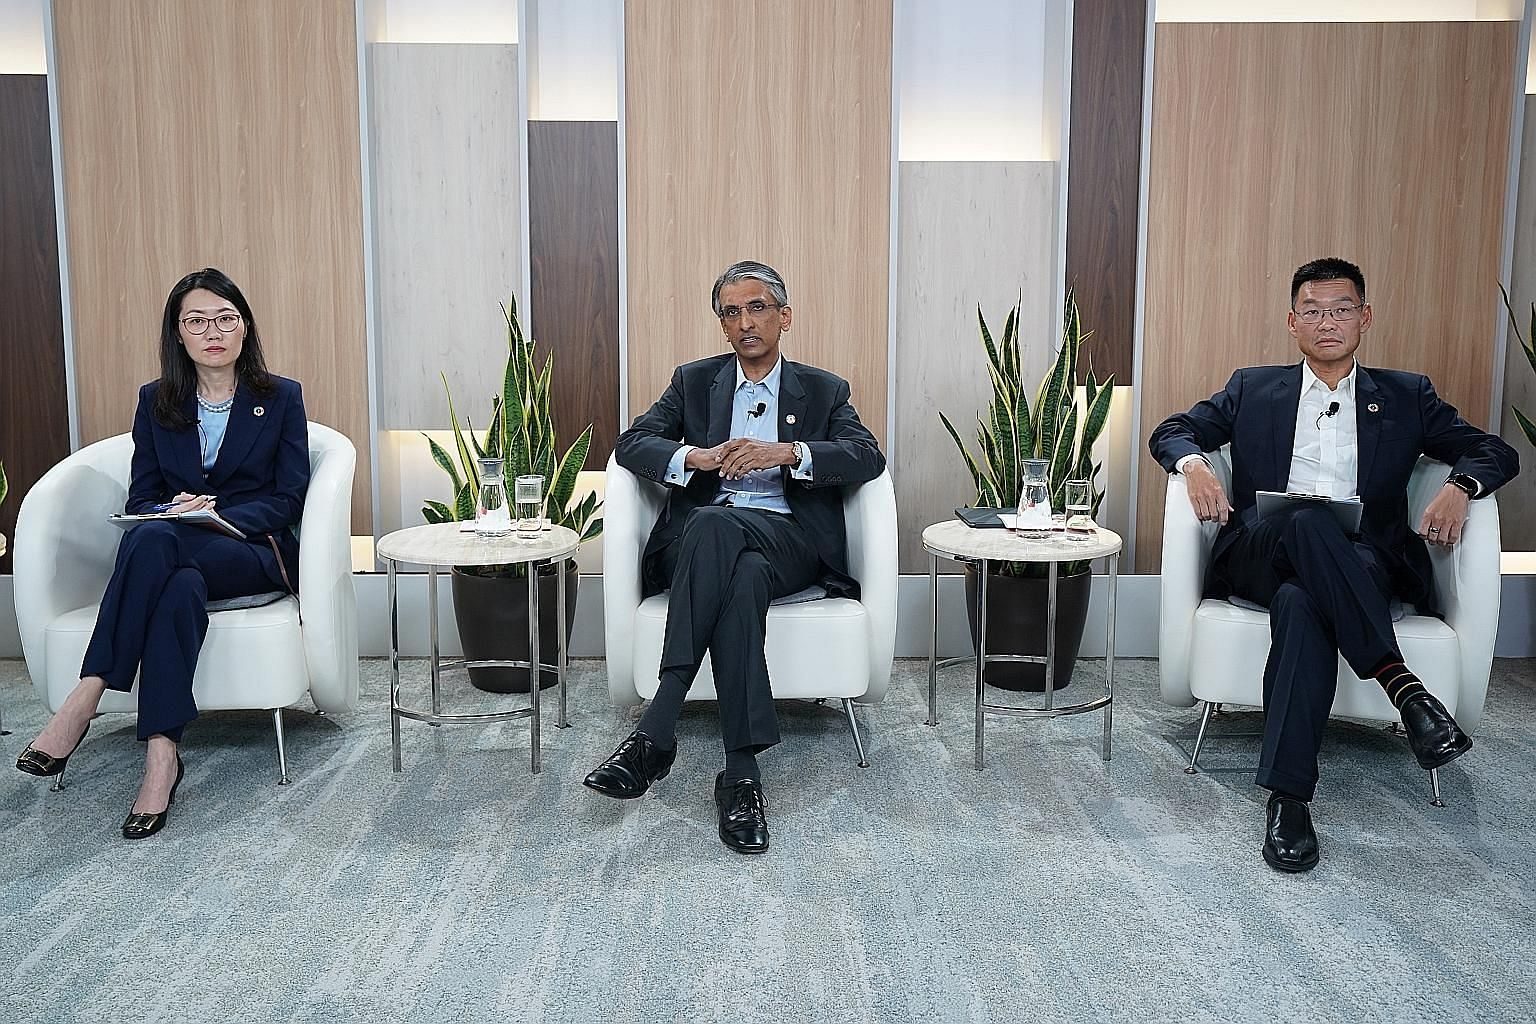 (From far left) Deputy chief financial officer and head of financial services Png Chin Yee, Temasek International chief executive Dilhan Pillay and senior managing director of the enterprise development group and deputy head of Singapore projects Yeo